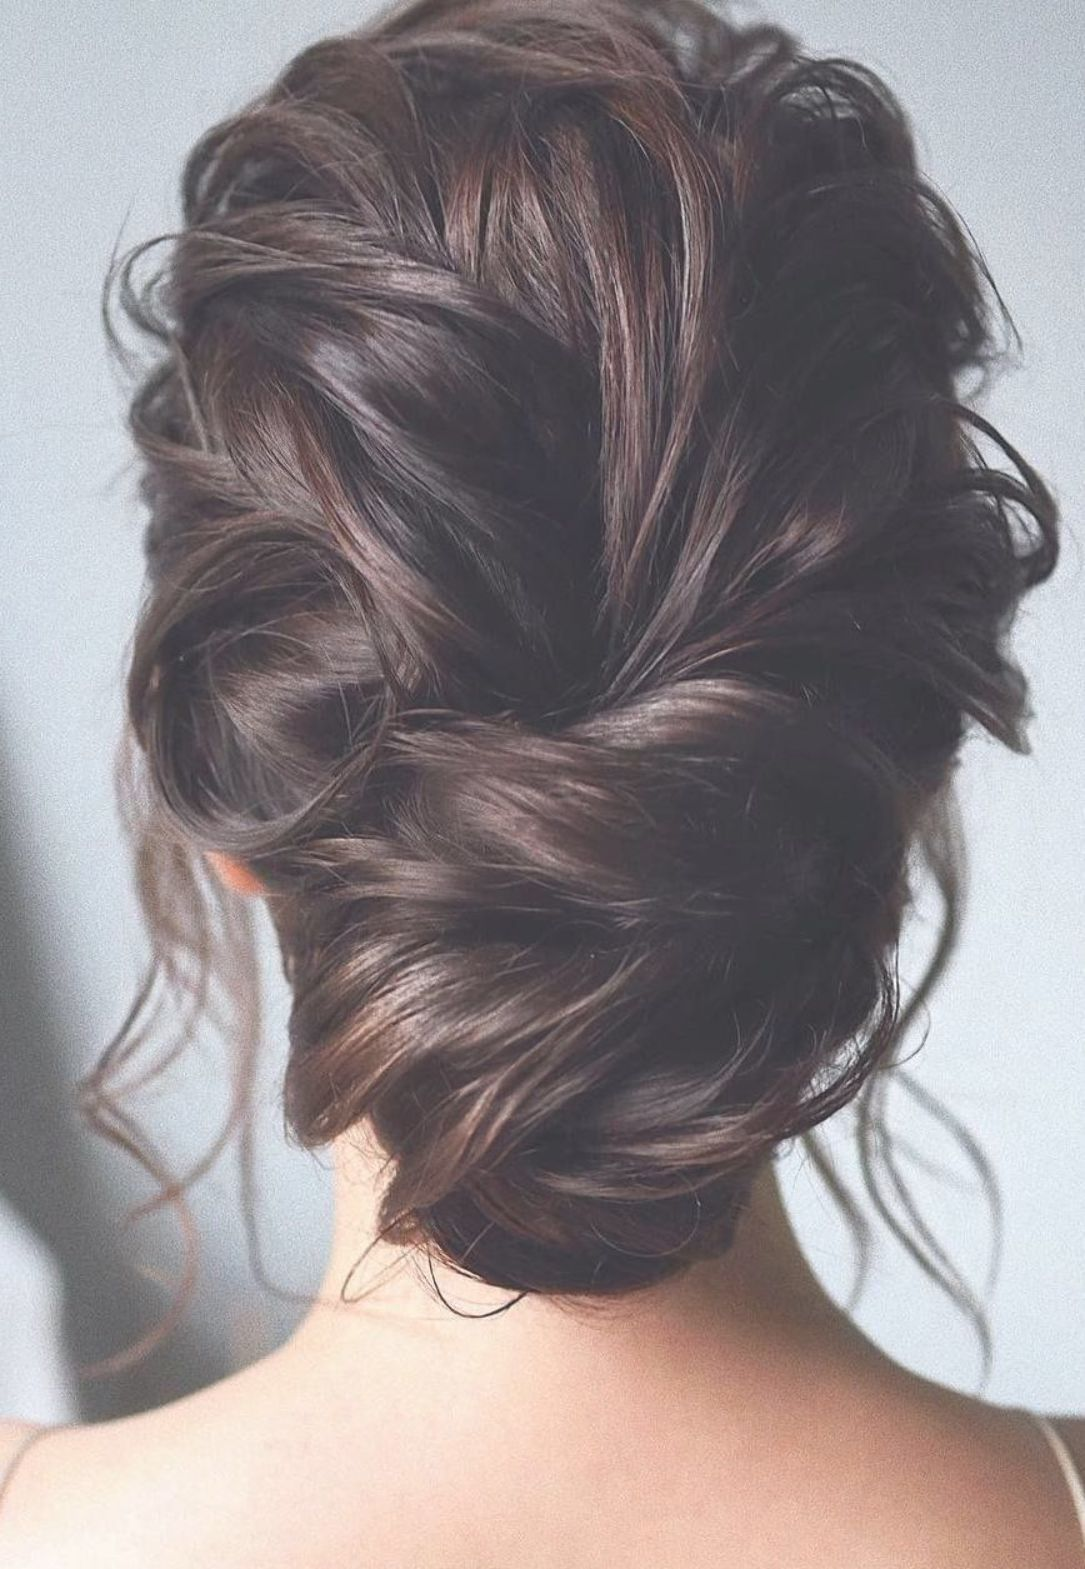 98 Wedding Hairstyles For Brides Black Hair Updo Hairstyles For Wedding Half Up Half Down Hairstyles Curl Hair Styles Classic Wedding Hair Bridal Hair Updo